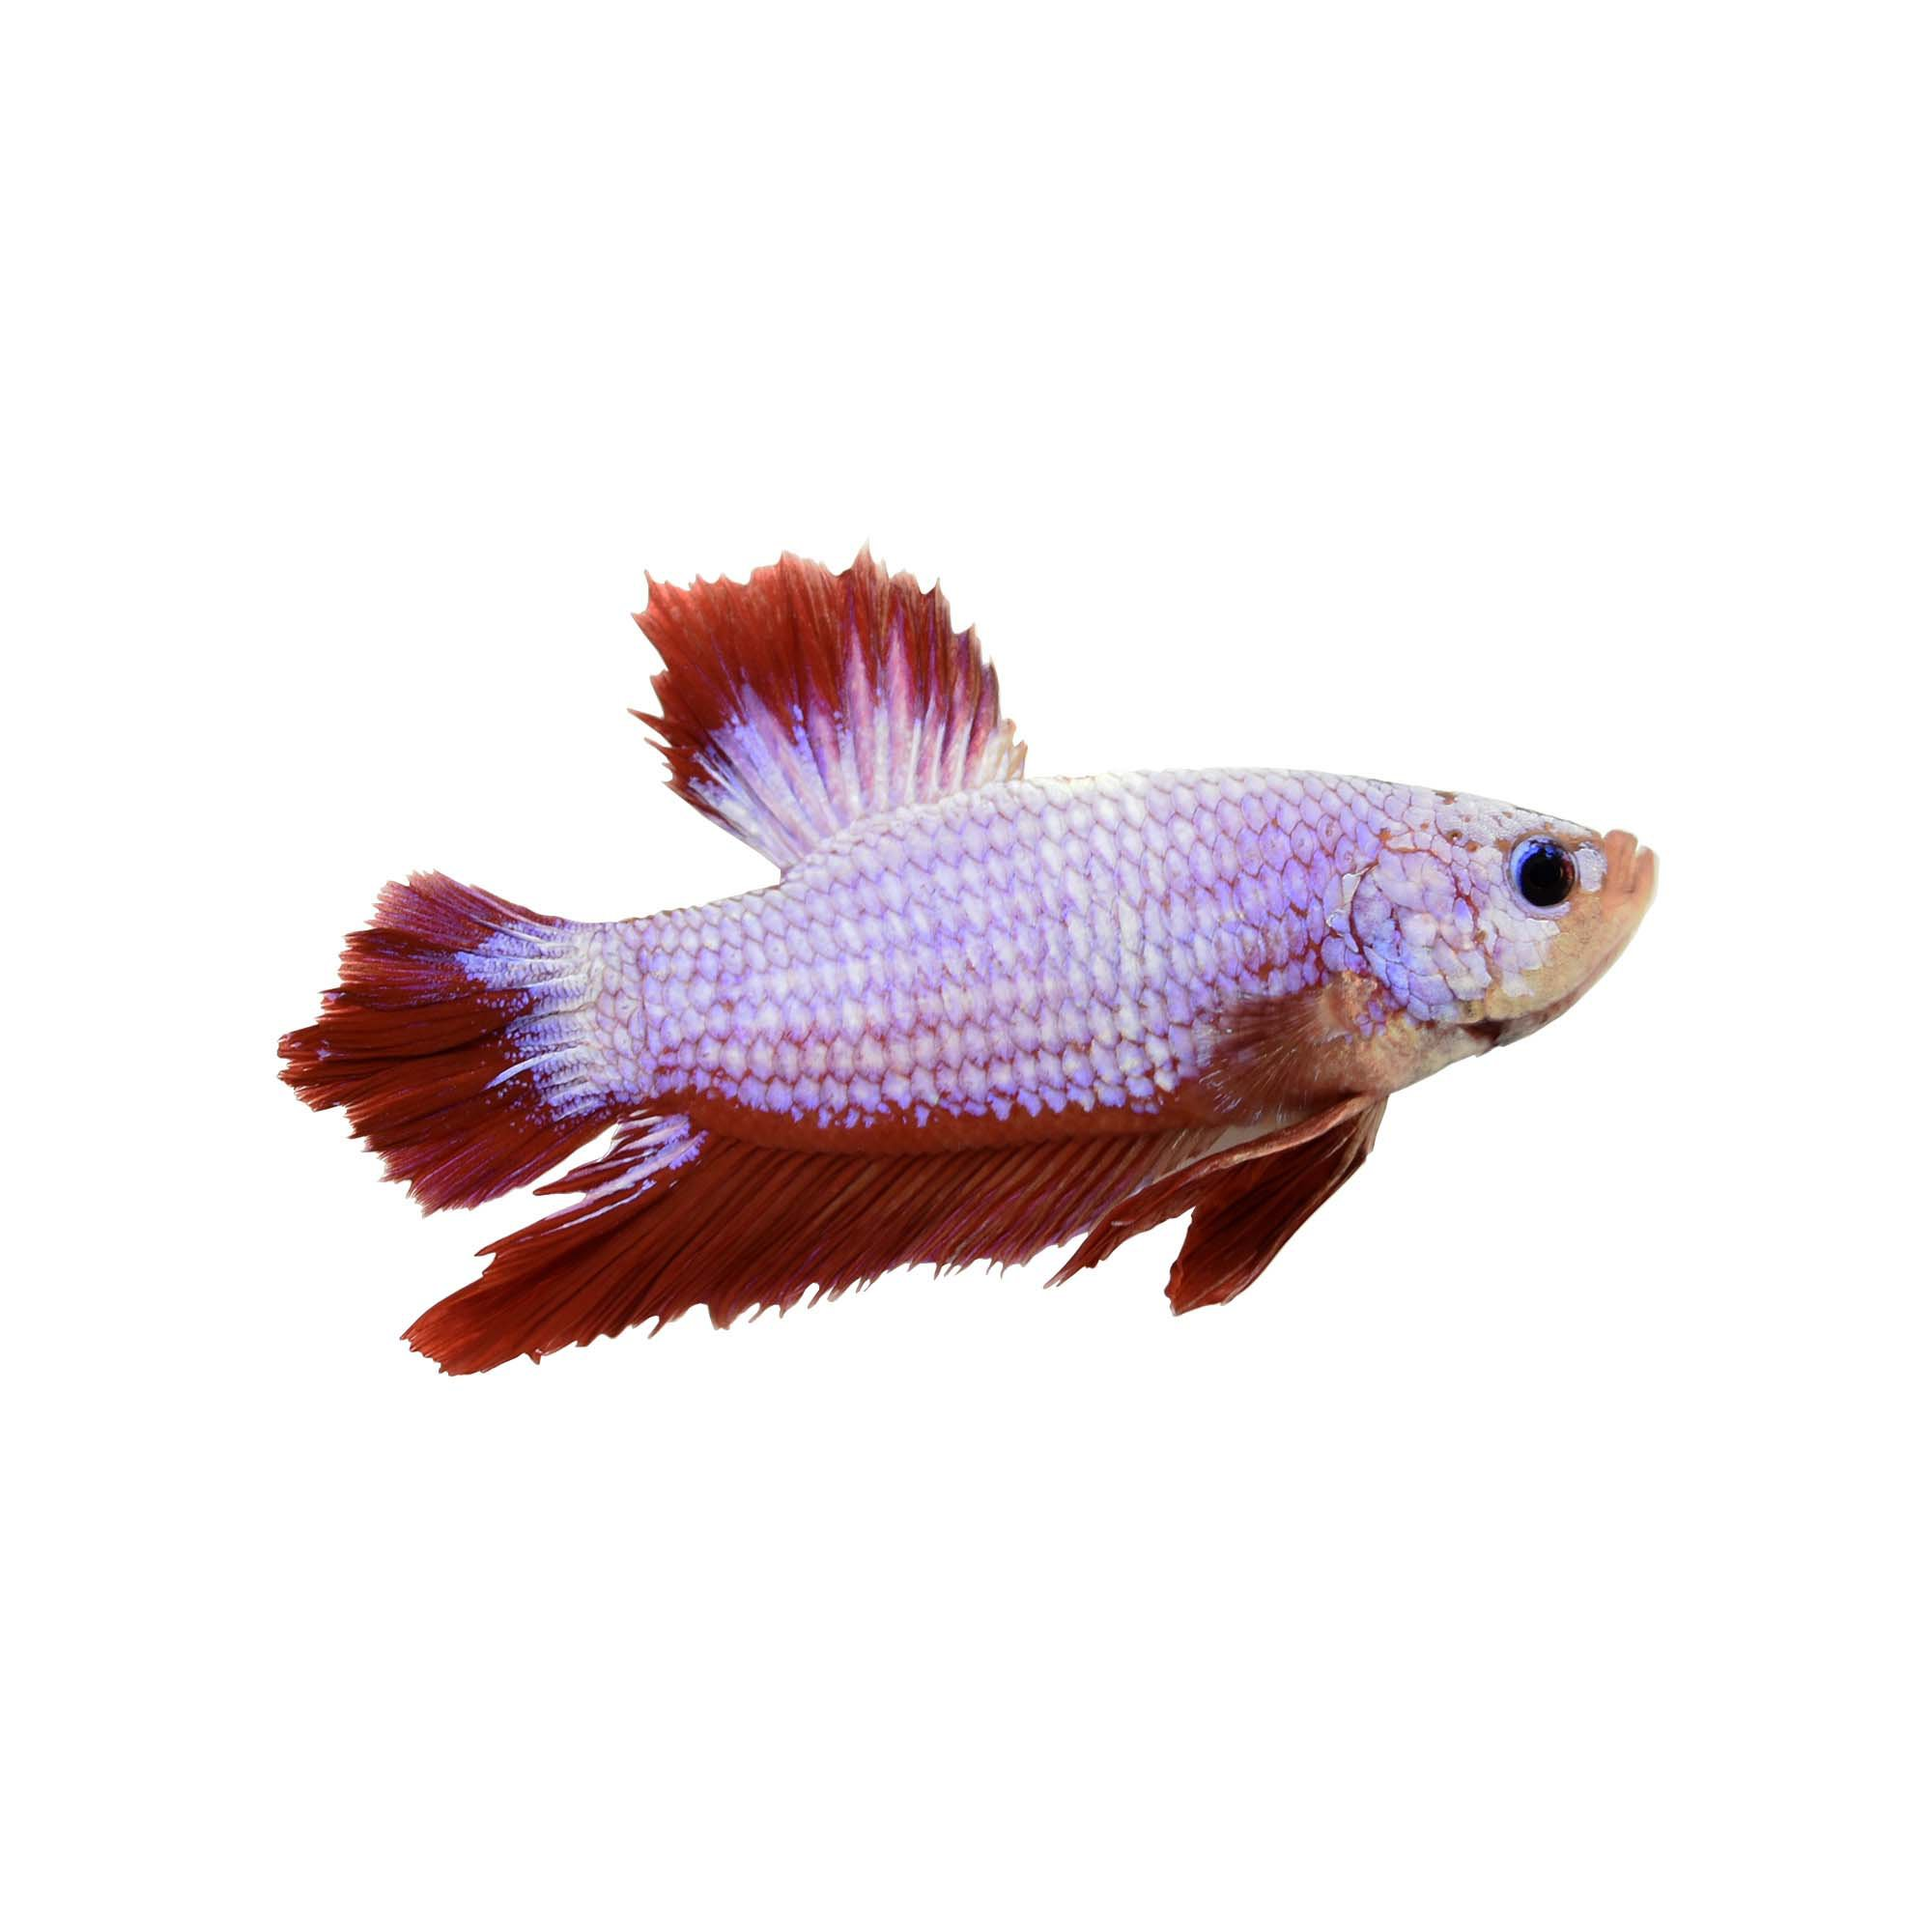 Male halfmoon plakat betta fish petco for Types of betta fish petco